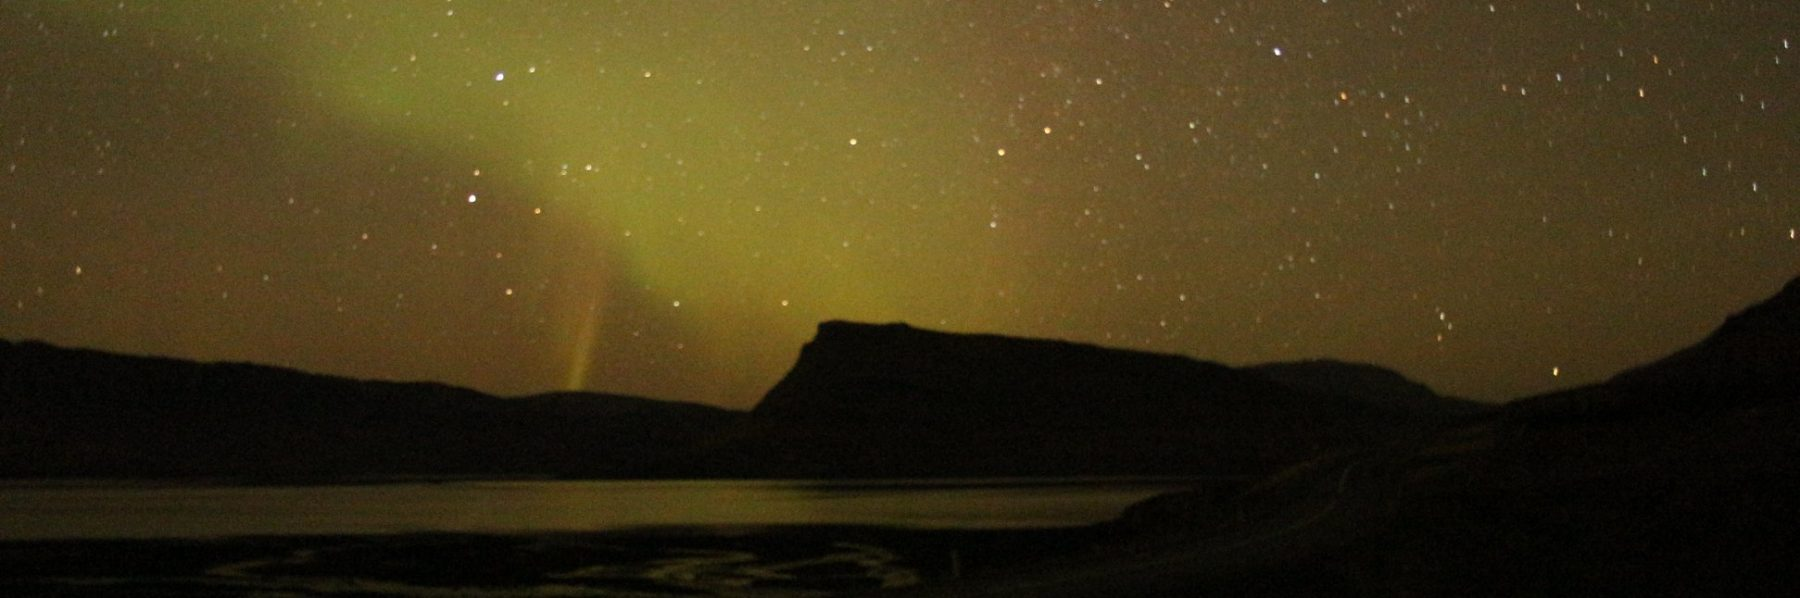 Iceland - Northern Lights (2)